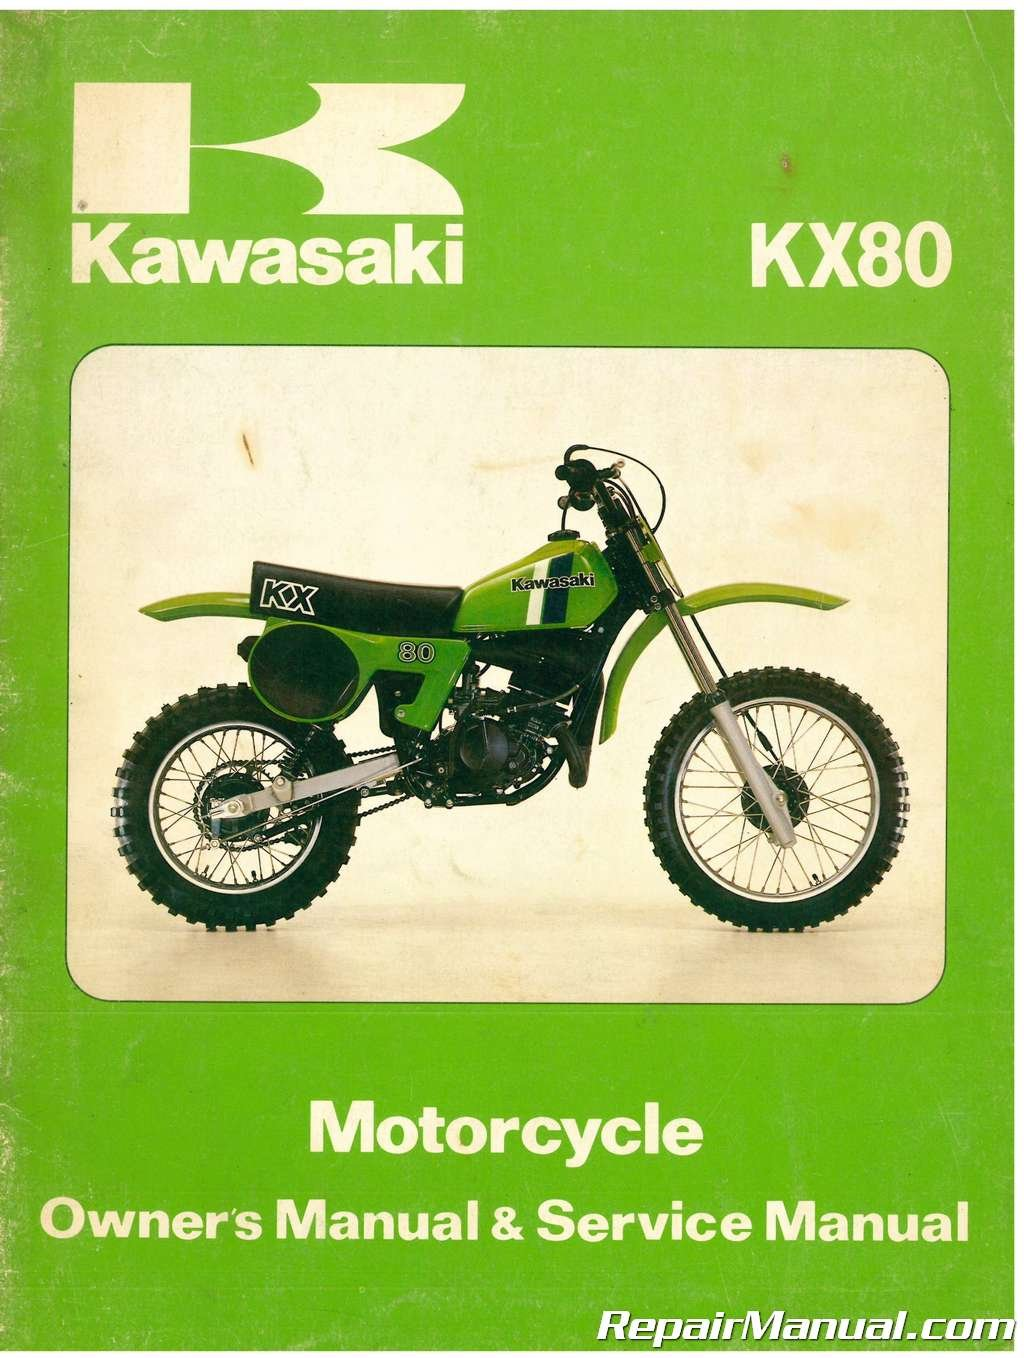 U99920-1085-01 Used 1979-1980 Kawasaki KX80 Motorcycle Owners Service Manual:  Manufacturer: Amazon.com: Books